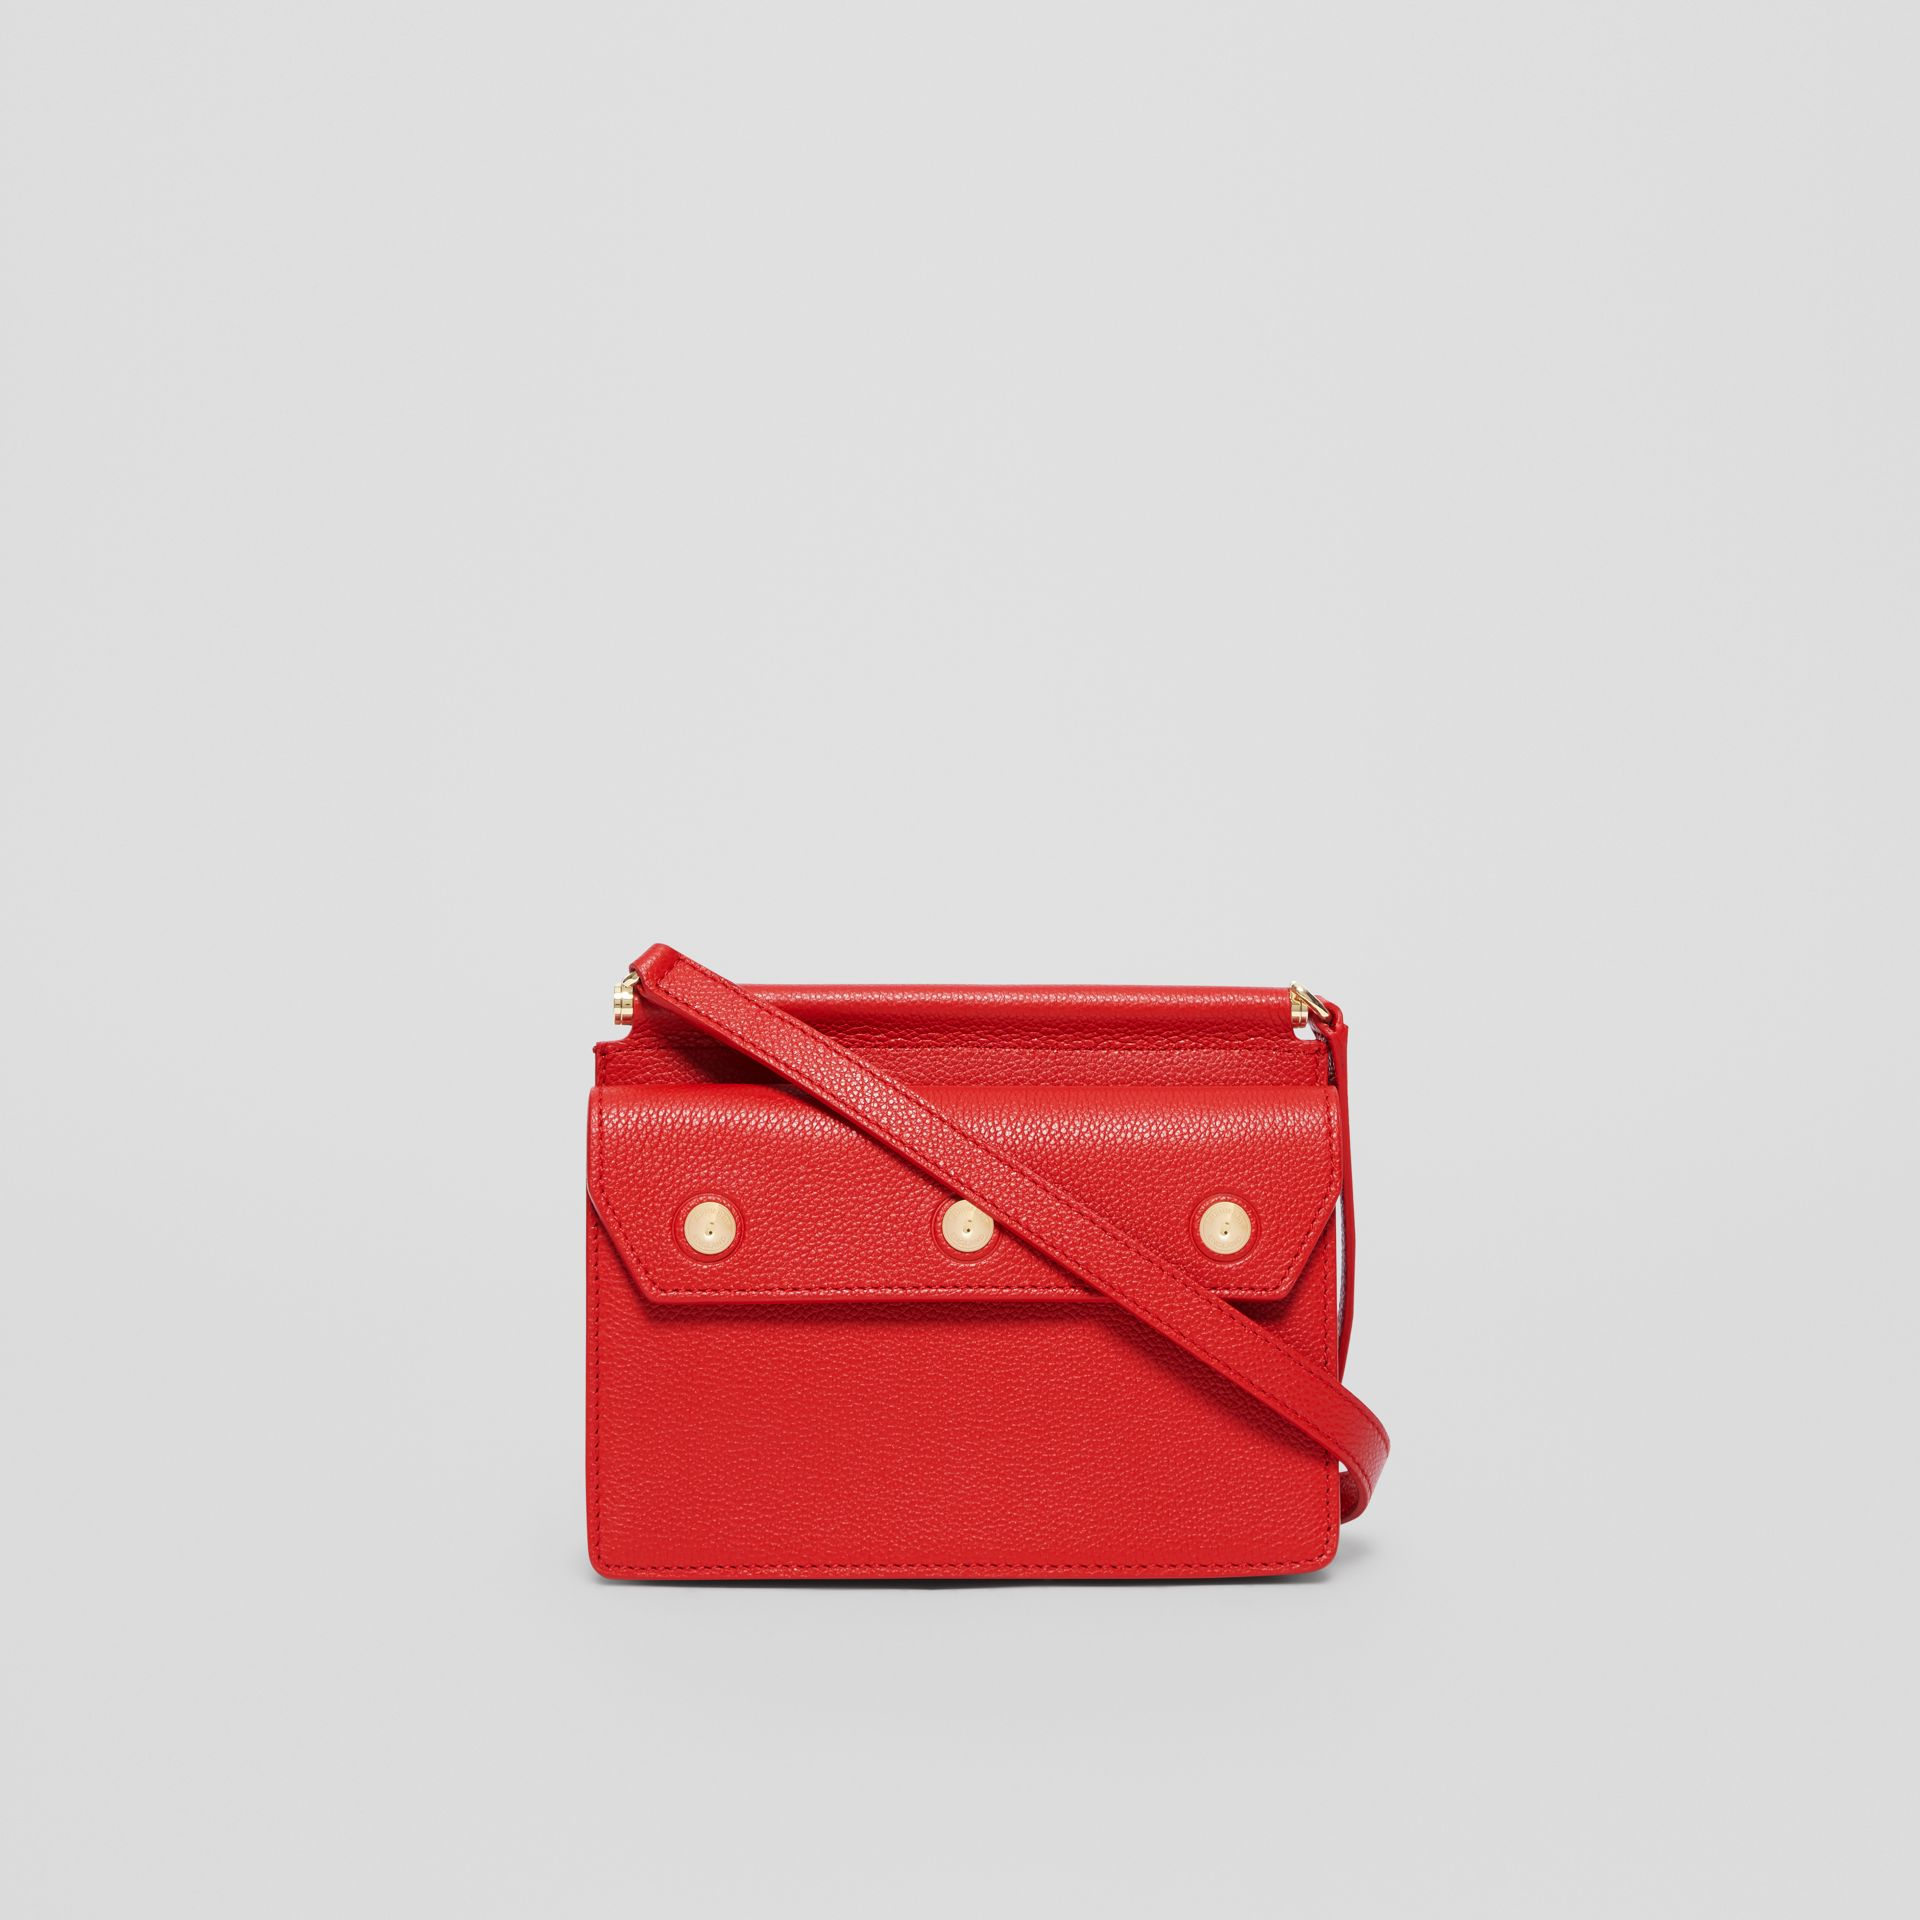 Mini Leather Title Bag with Pocket Detail in Bright Military Red - Women | Burberry Canada - gallery image 7